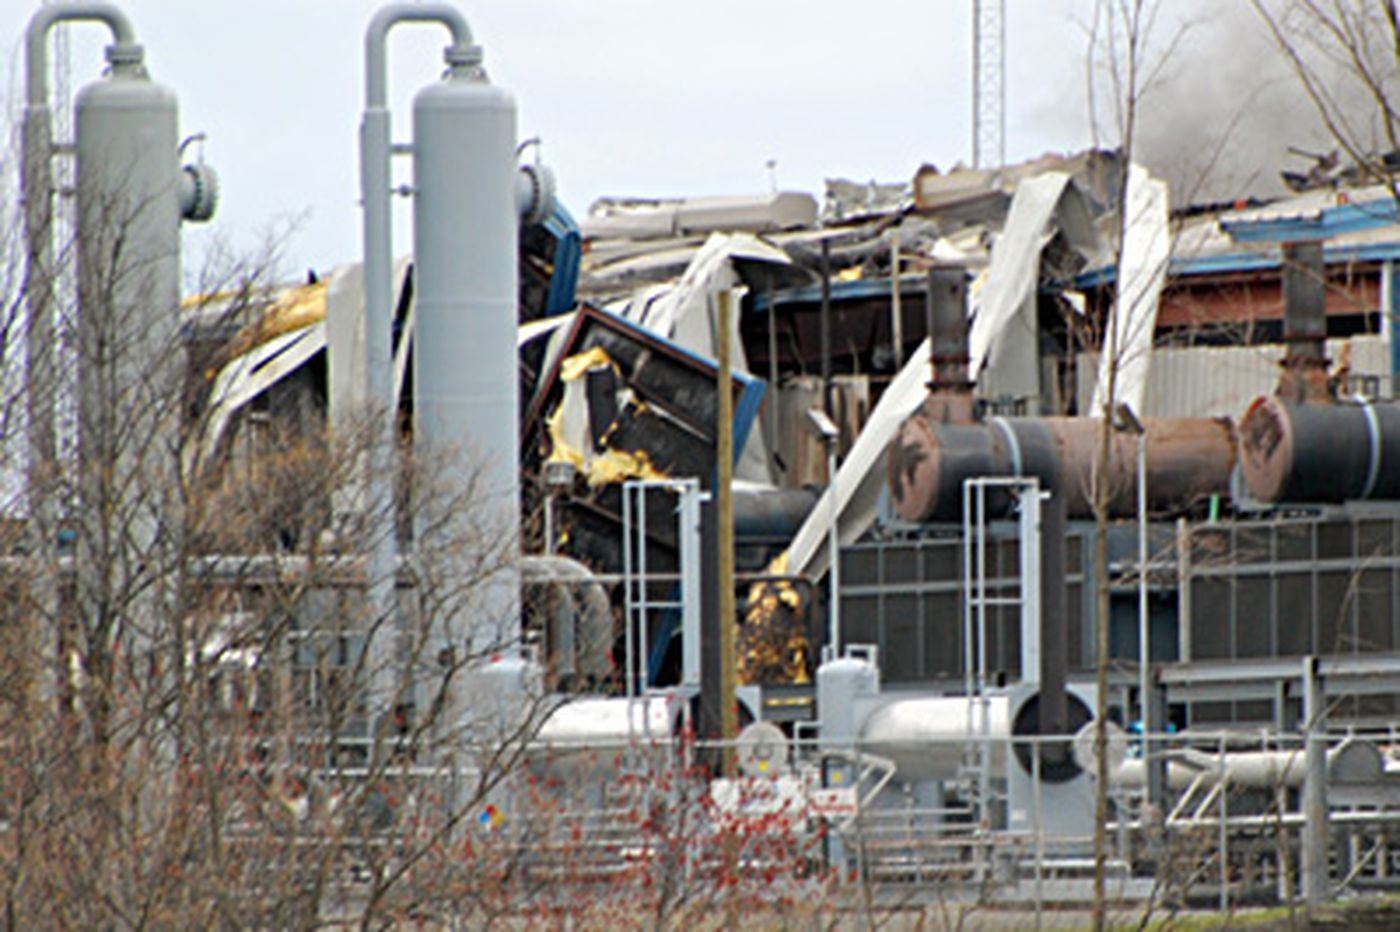 Northern Pennsylvania gas explosion was out of regulatory reach